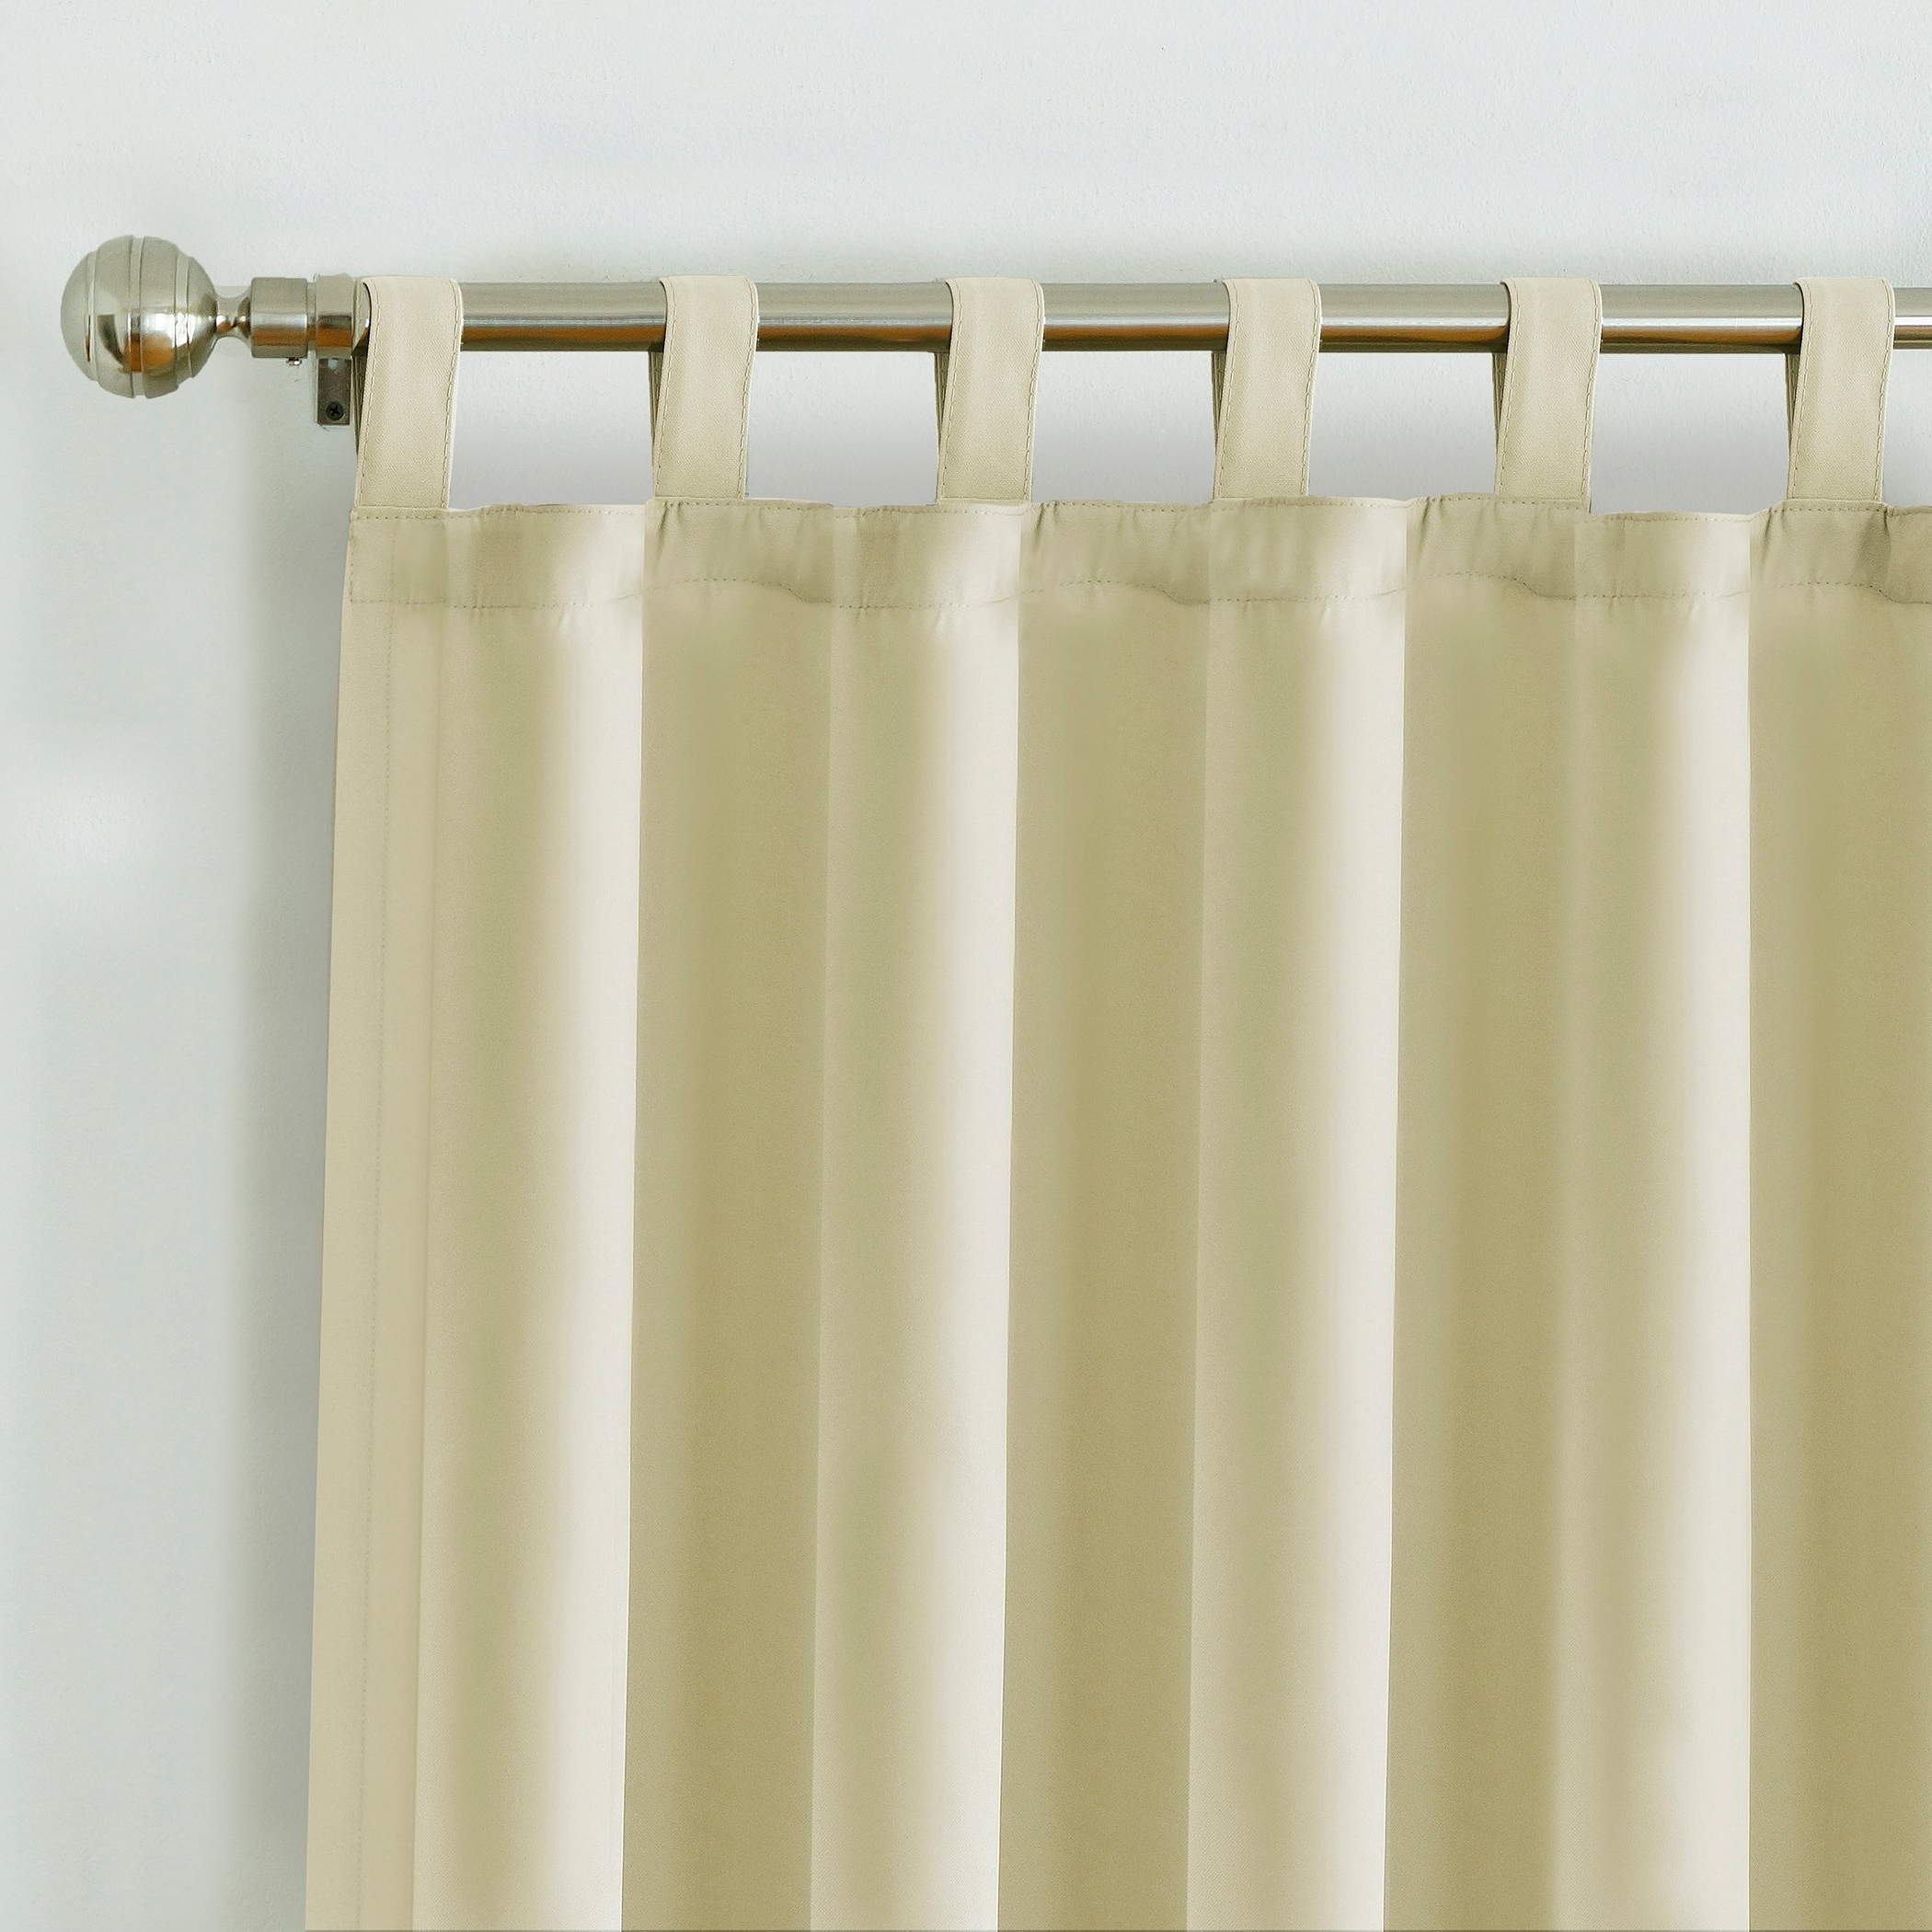 Matine Indoor/outdoor Curtain Panel In Well Known Matine Indoor/outdoor Curtain Panels (View 11 of 20)